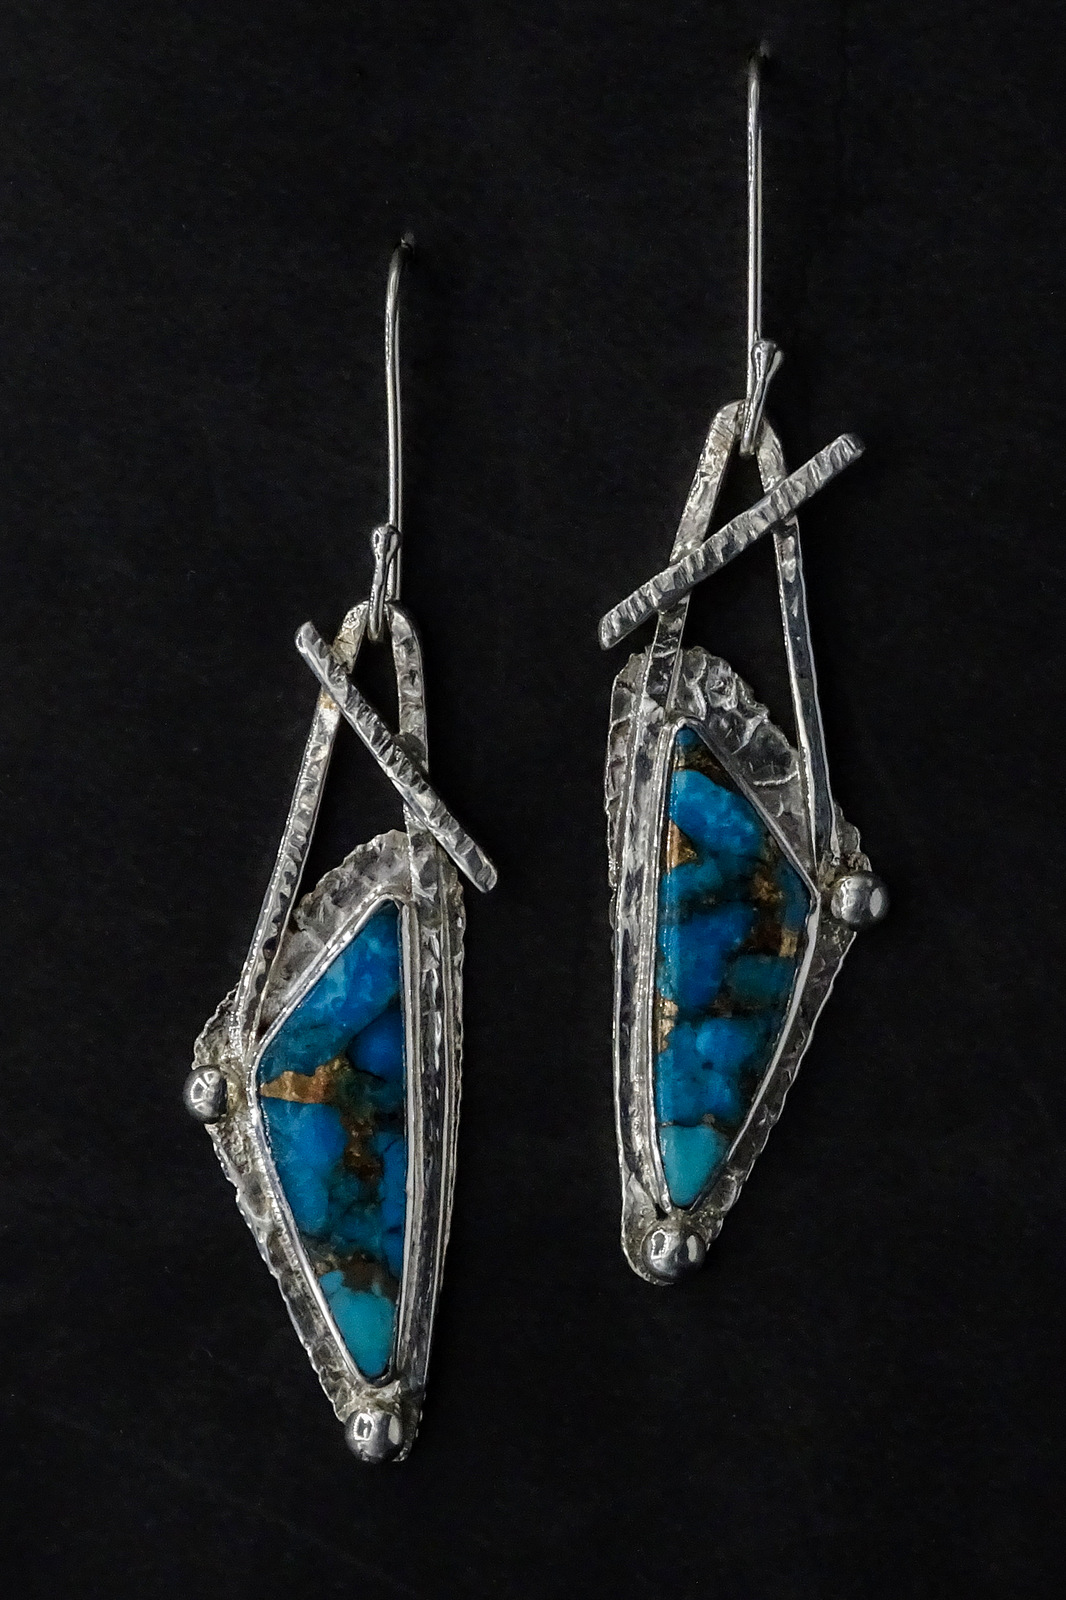 GEOMETRIC TURQUOISE EARRINGS,  Silver Ear Wires,  2 x .5 inches - 2.75 inches drop length